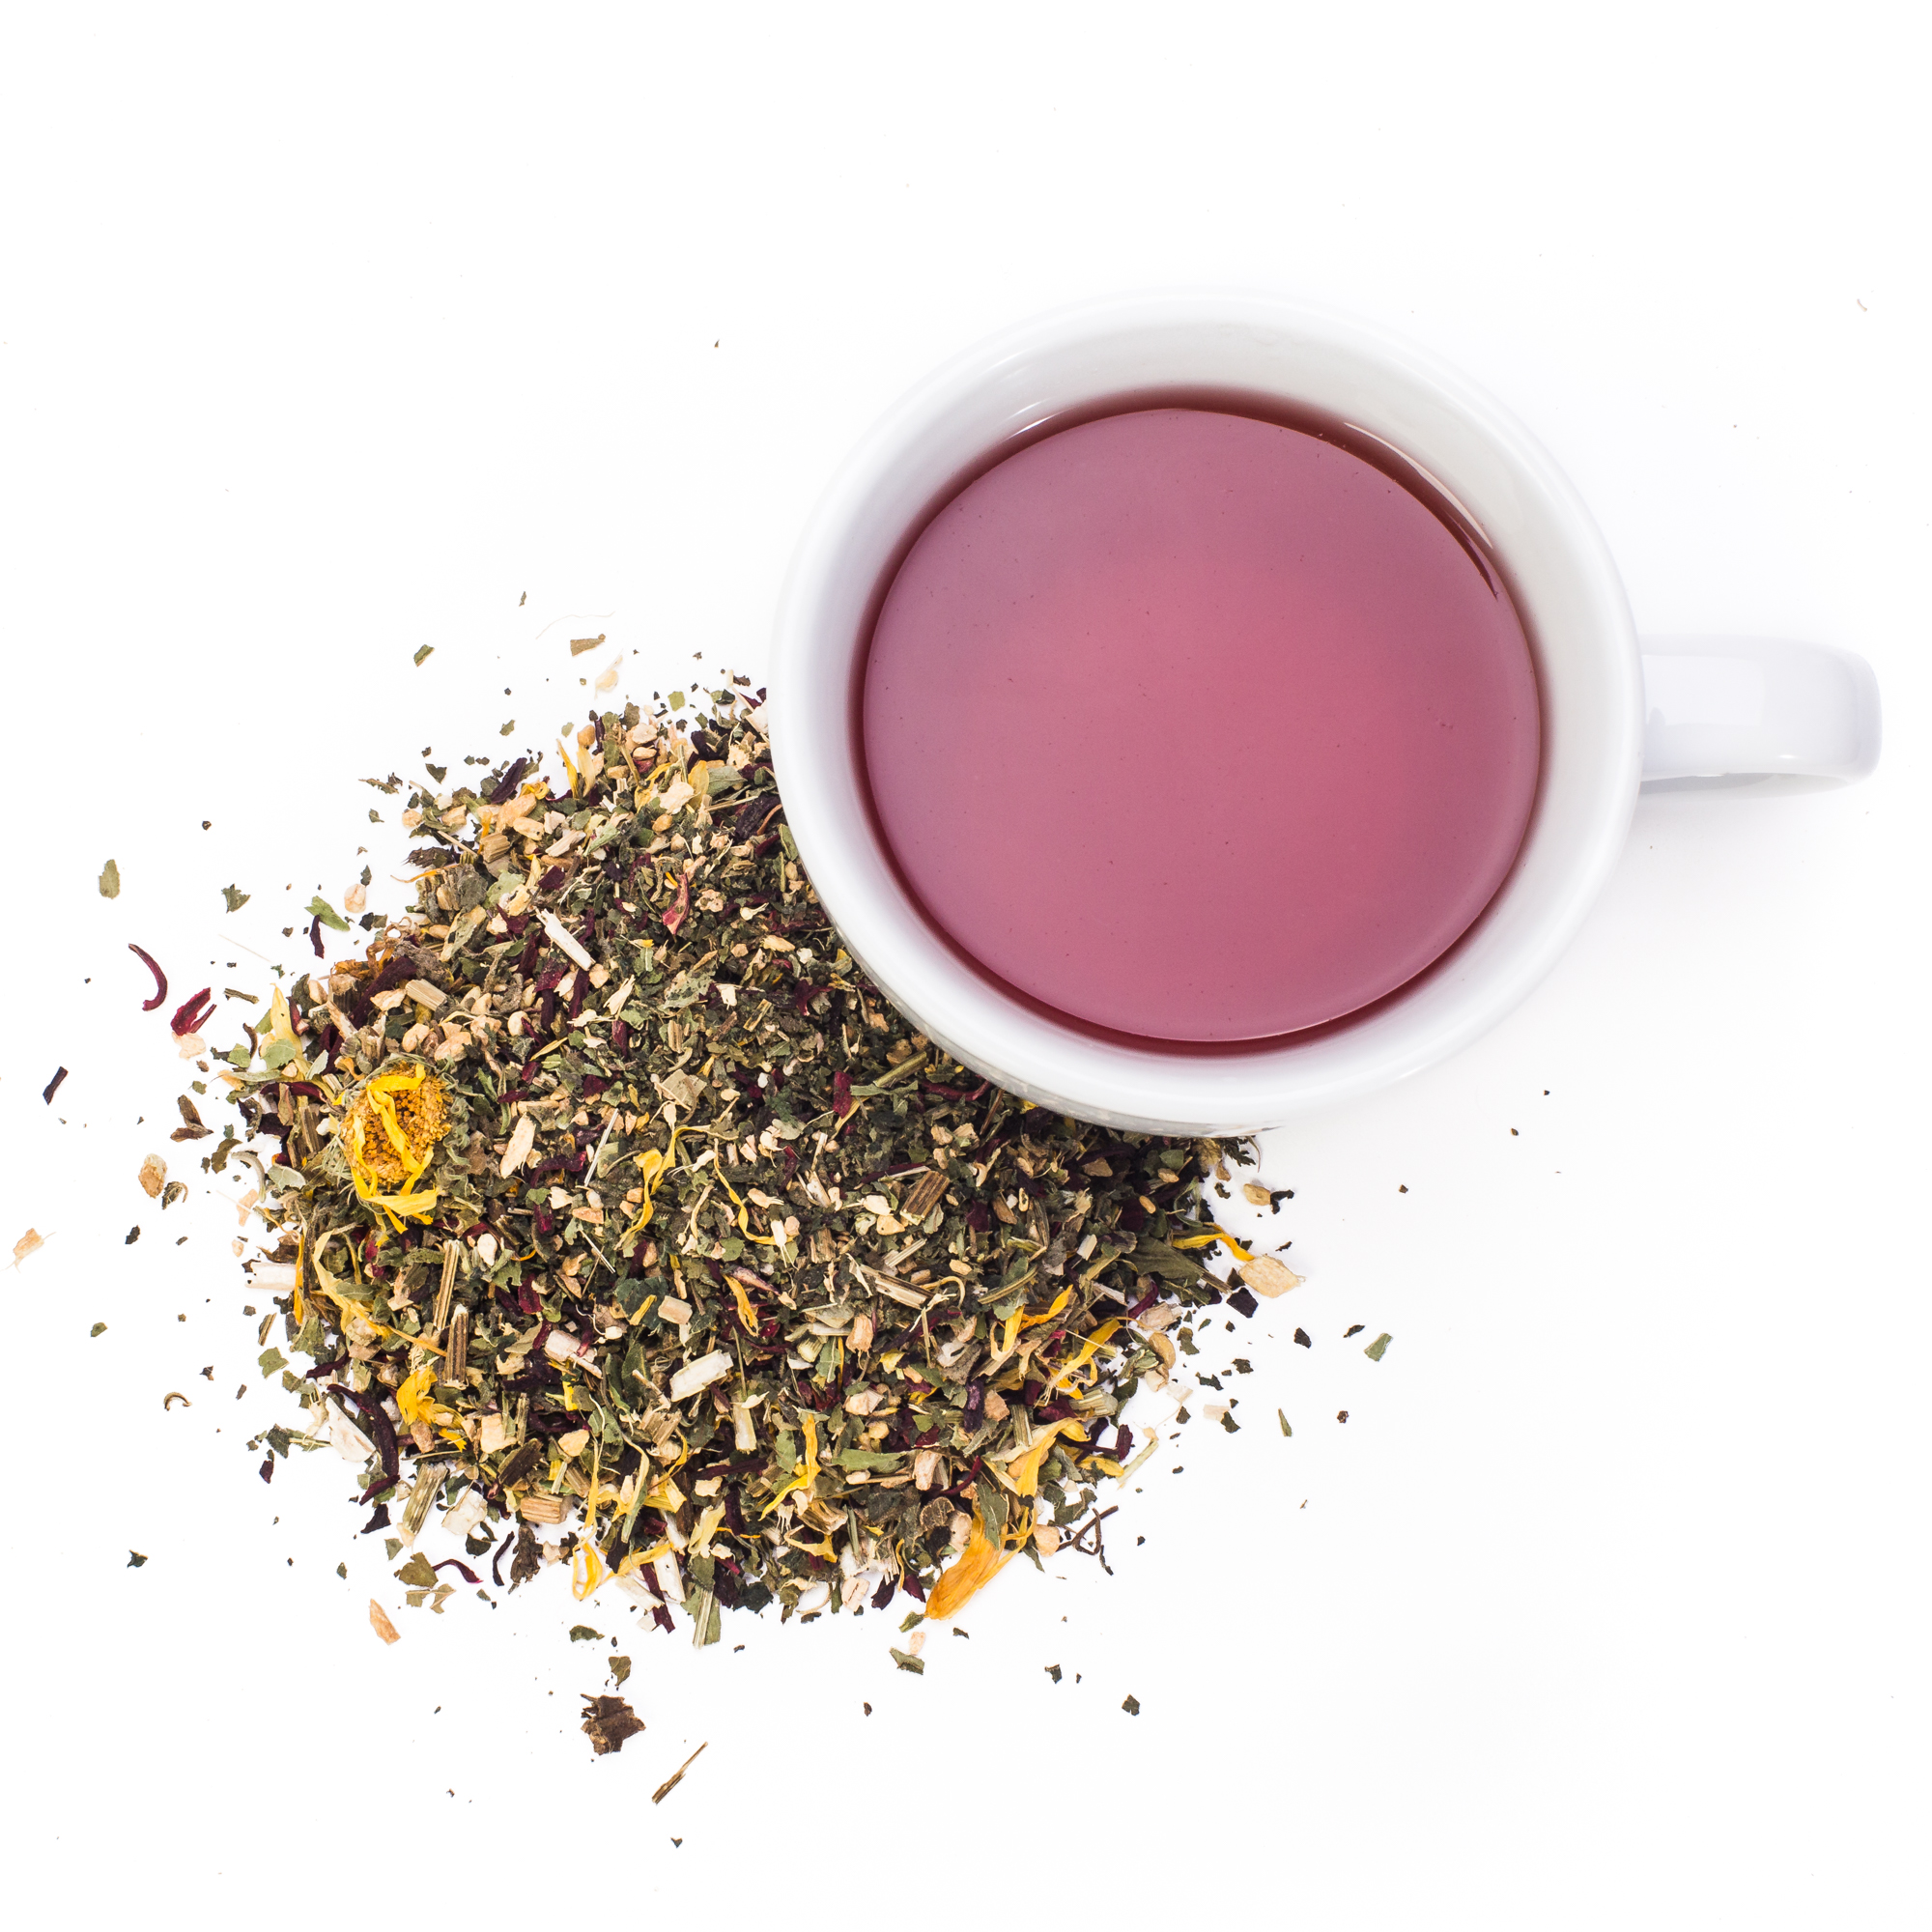 IMMUNI-TEA - This beautiful blend is anti-bacterial, anti-viral, and anti-microbial. This is also the tea that you want to be drinking between the sick to keep your immune system working strong.